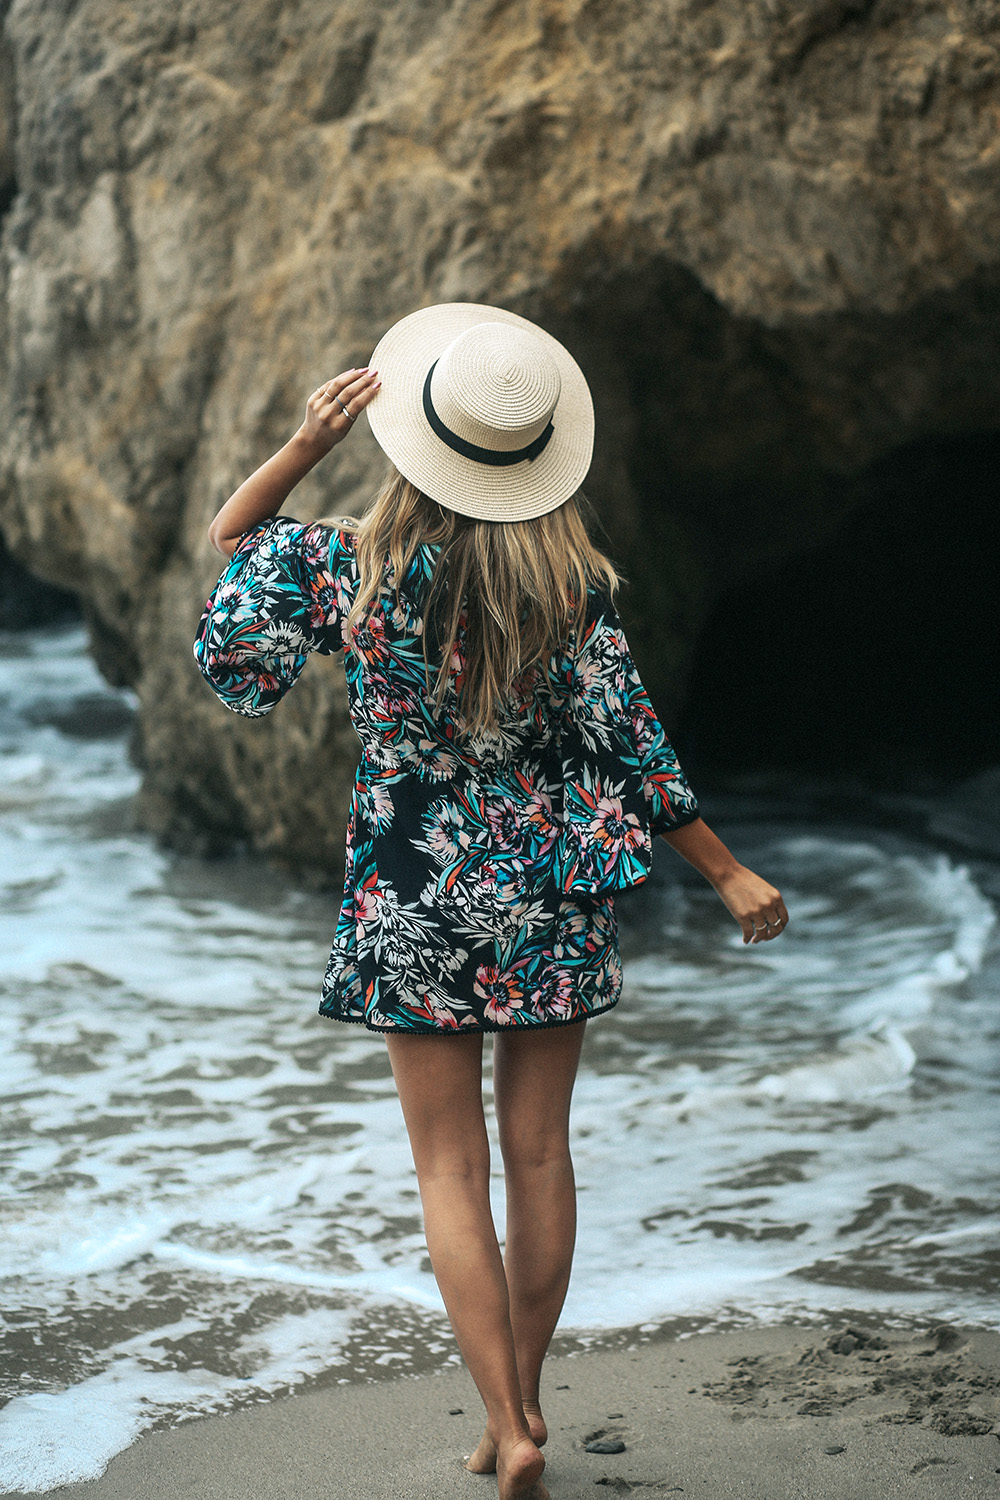 last days of summer with wet swim, malibu, wet swim, bathing suits, bikini, summer, beach, melrodstyle, collaboration, beach babe, beaches, malibu beach, wet swimwear, ocean, cali, la blogger, cover up,